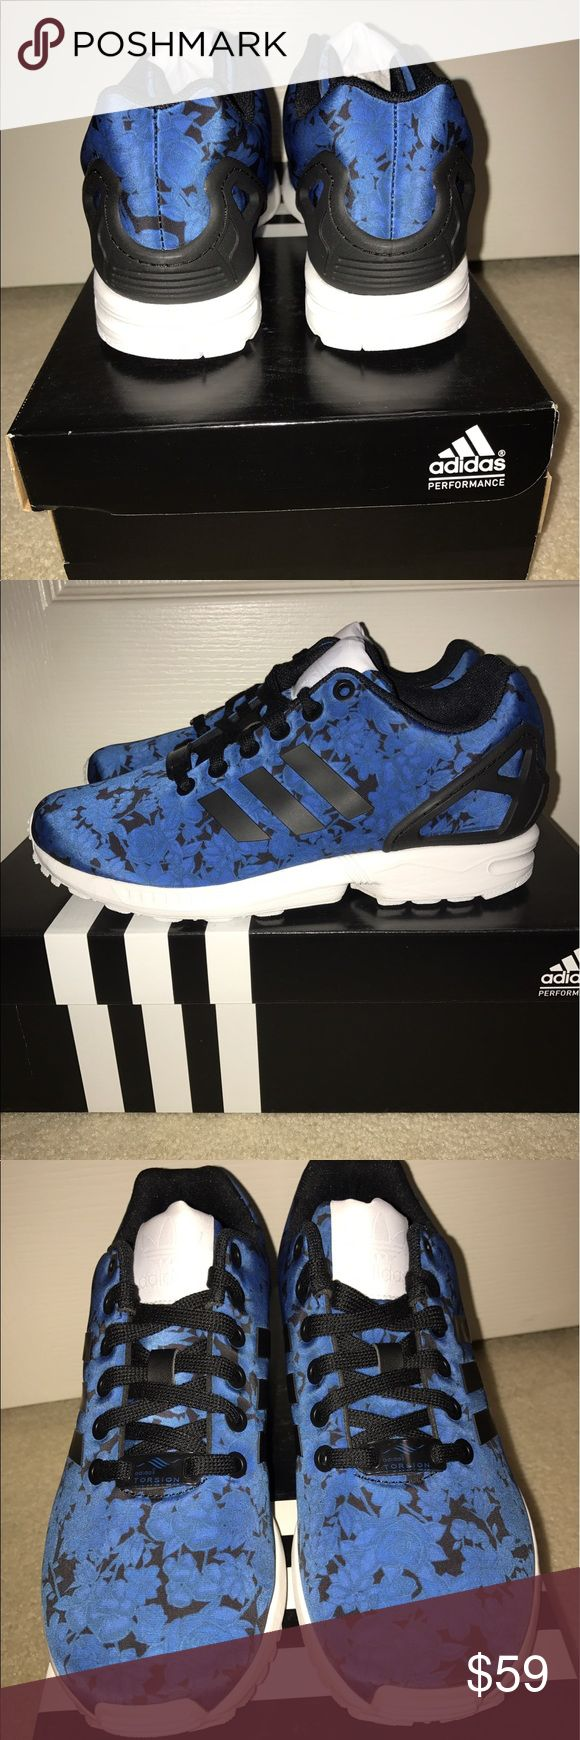 NIB Adidas ZX Flux Blue Floral Women's Size 6 New In Box Adidas ZX Flux Floral Women's Size 6. Navy blue, black, white. adidas Shoes Sneakers